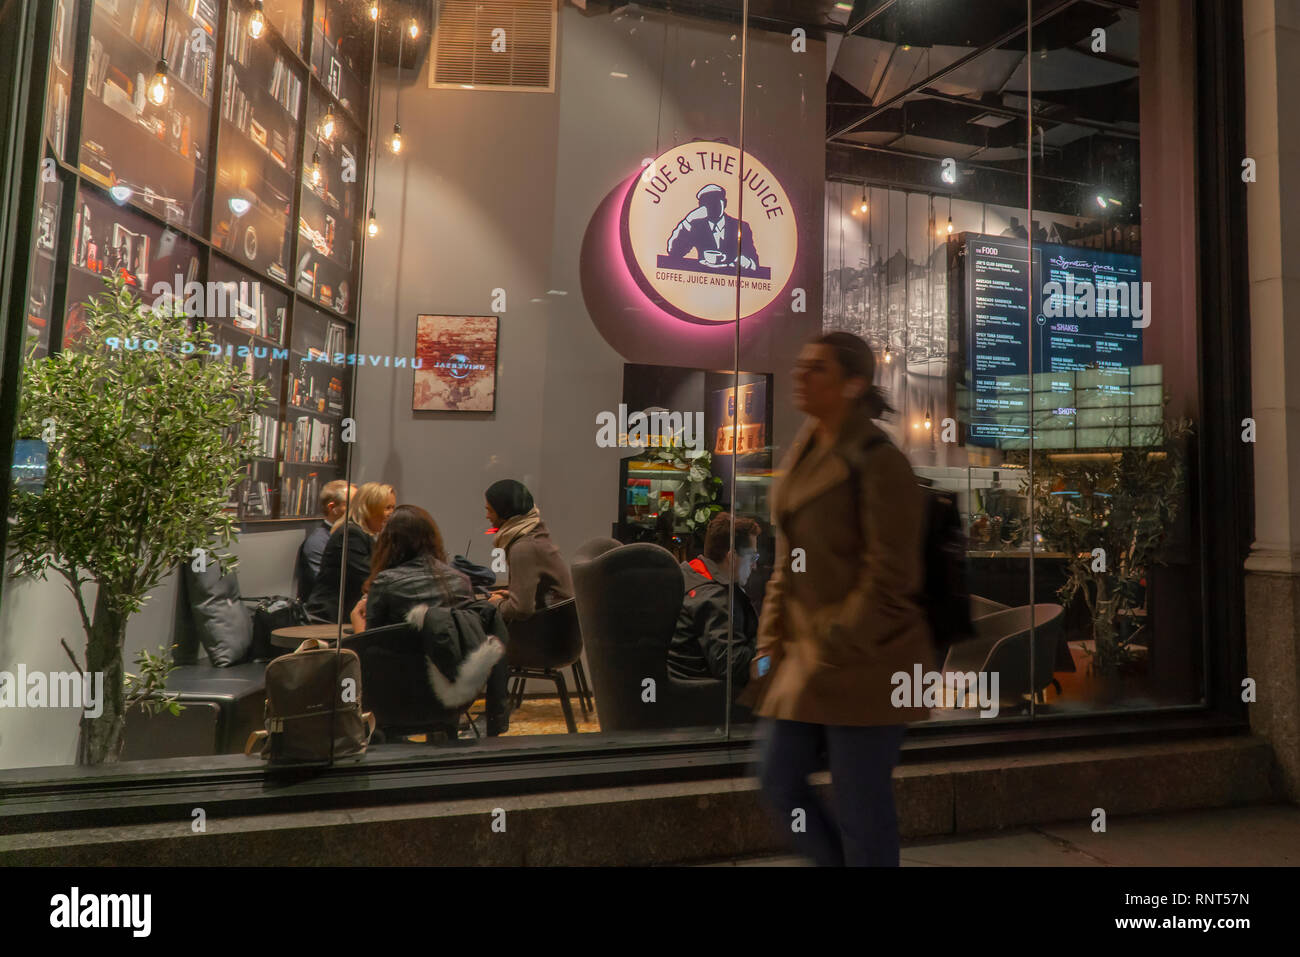 A Joe & the Juice store in Midtown Manhattan in New York on Tuesday, February 13, 2019. Valedo Partners and General Atlantic, the owners of J&tJ are reported to be preparing for an initial public offering for the healthy food chain in 2019. (© Richard B. Levine) - Stock Image